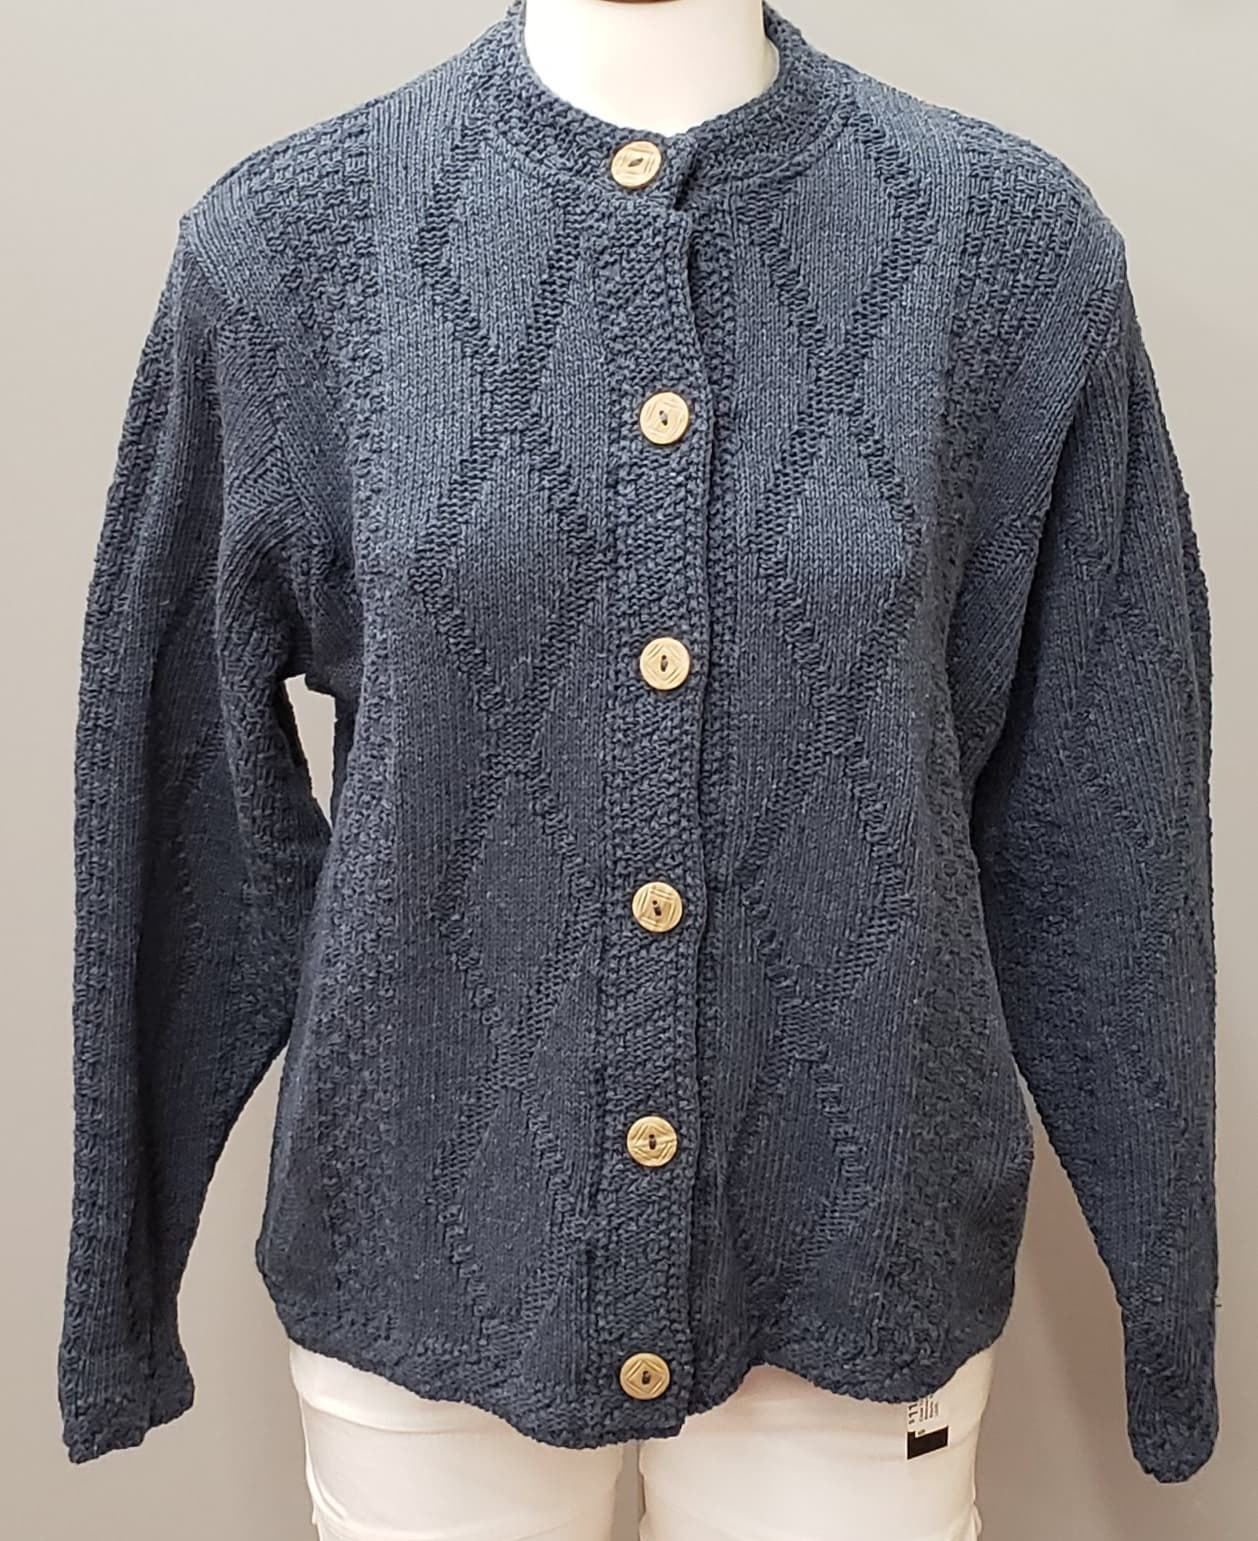 Binghamton Knitting Company Denim Diamond Cardigan